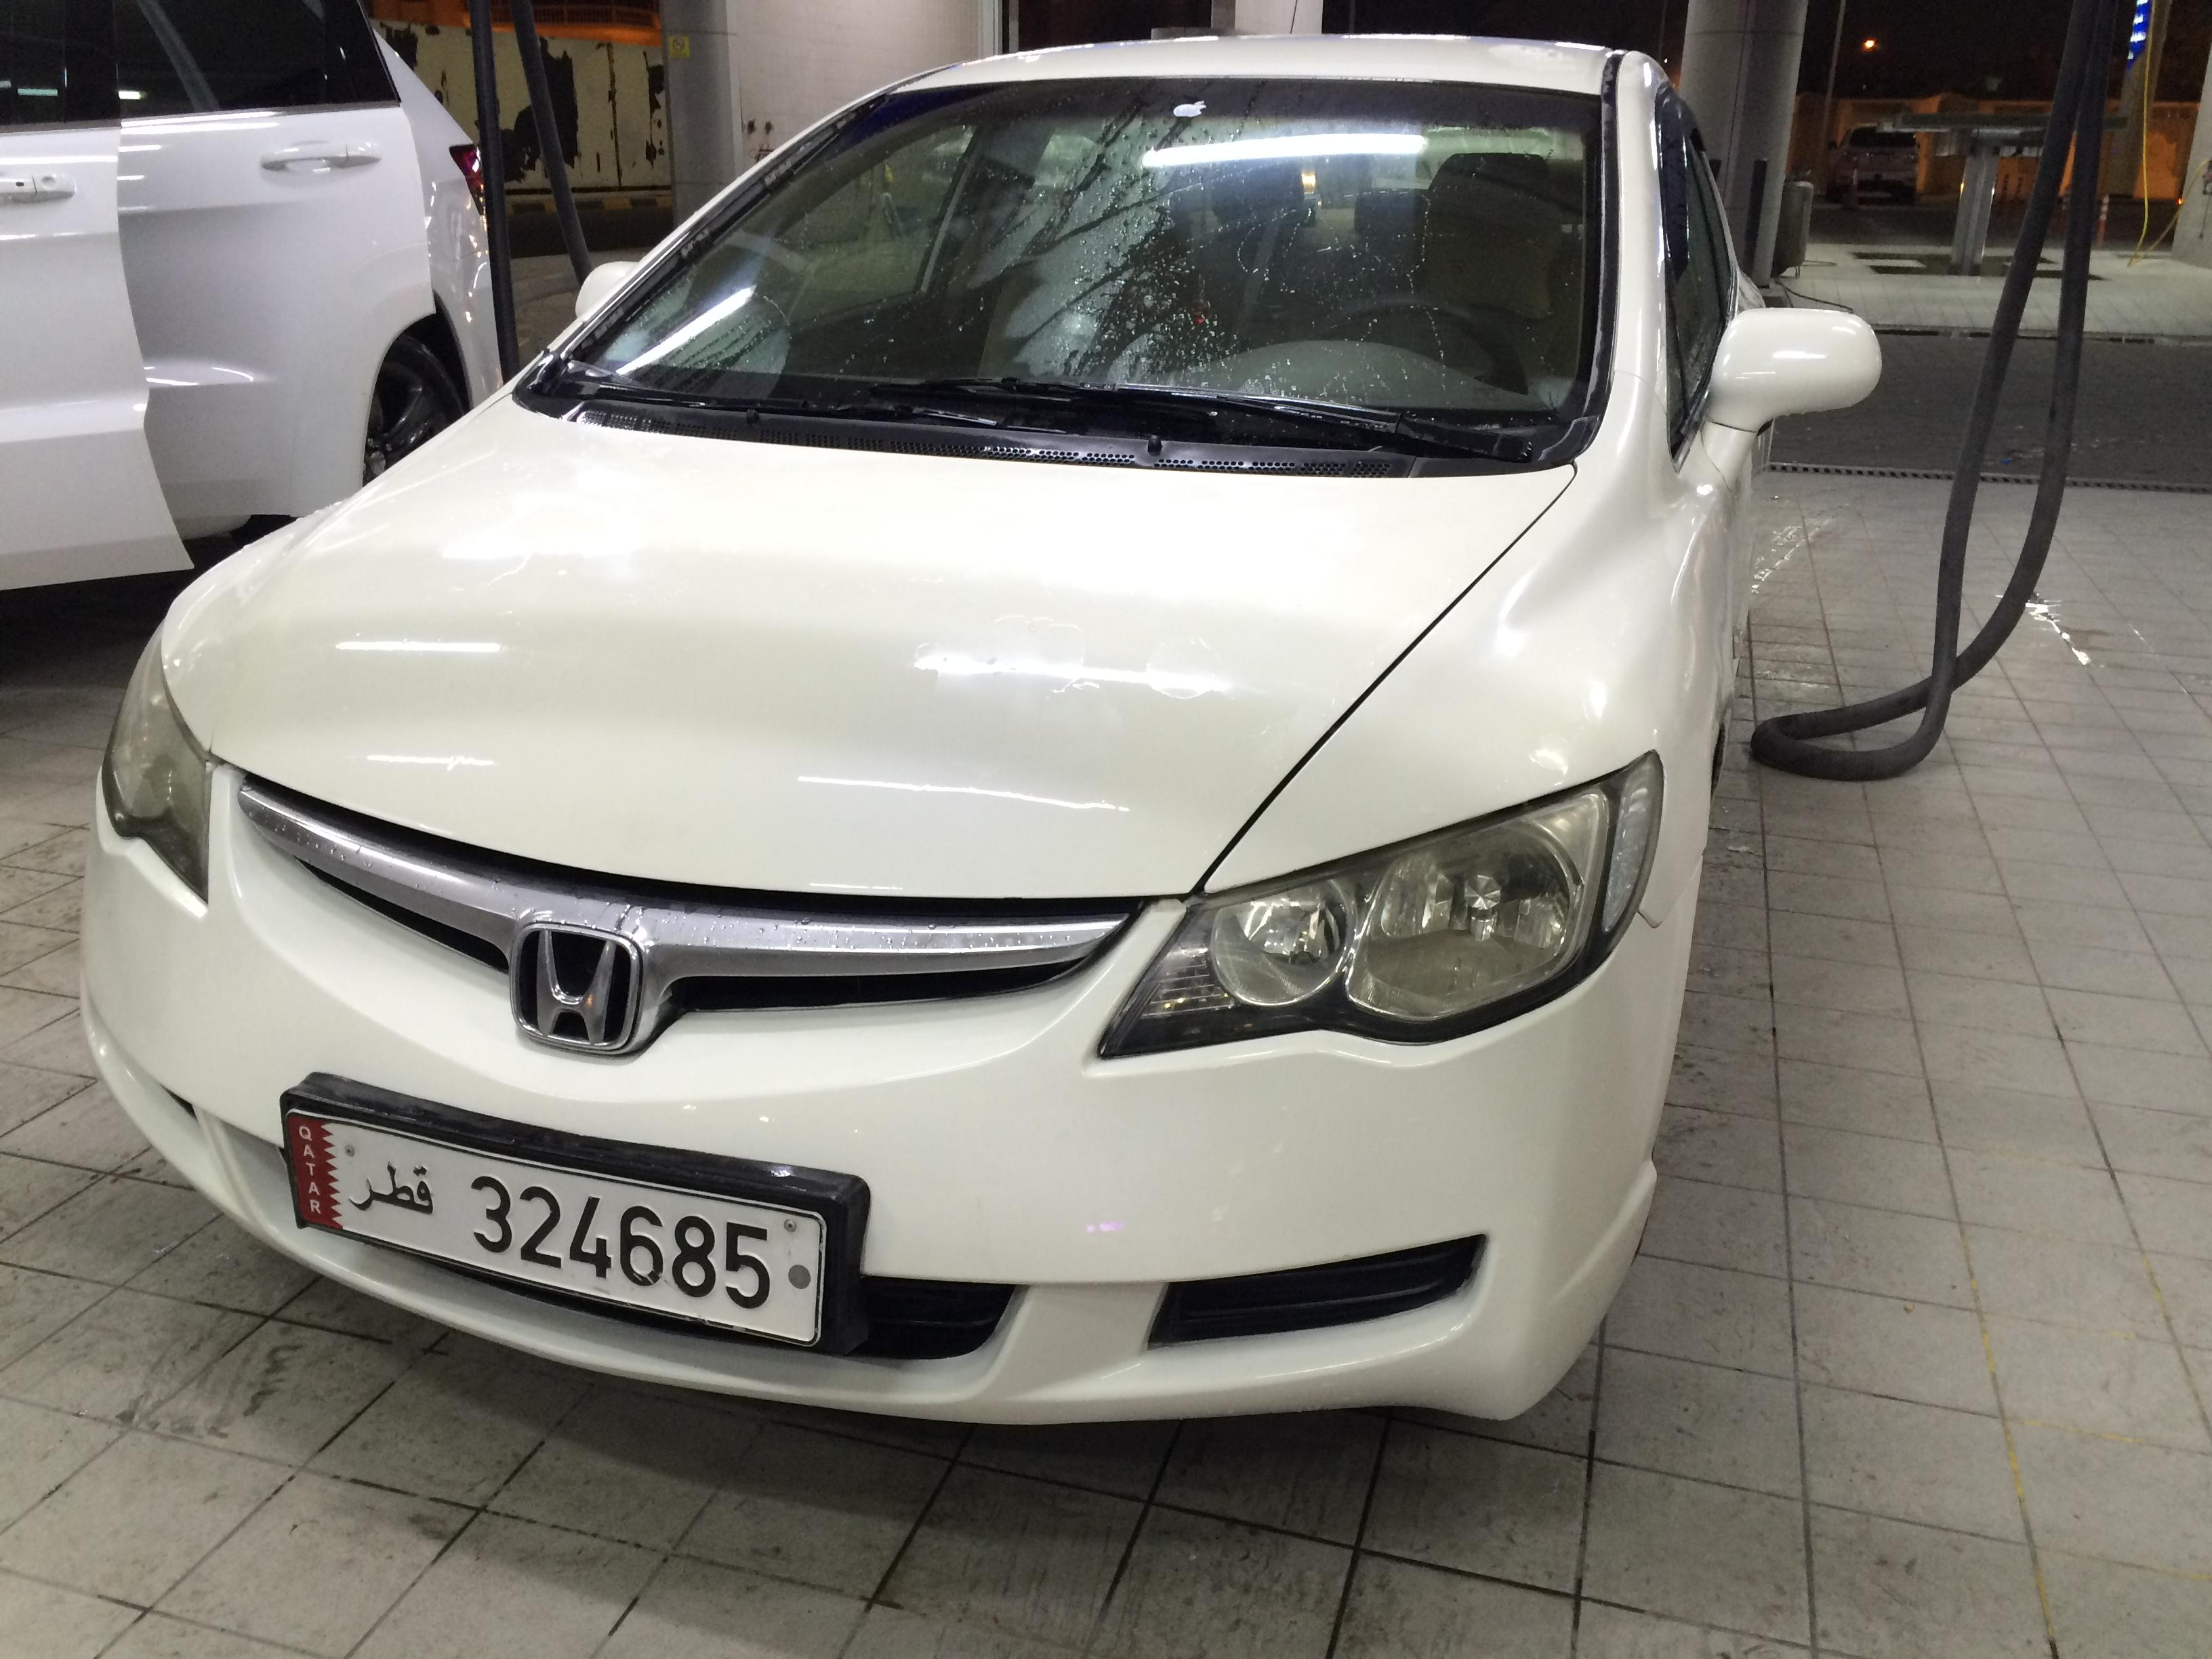 Family Used Civic 2006 Km 230000 Price 16000 Very Near And Clean Full  Option New Istimara And 4 New | Qatar Living